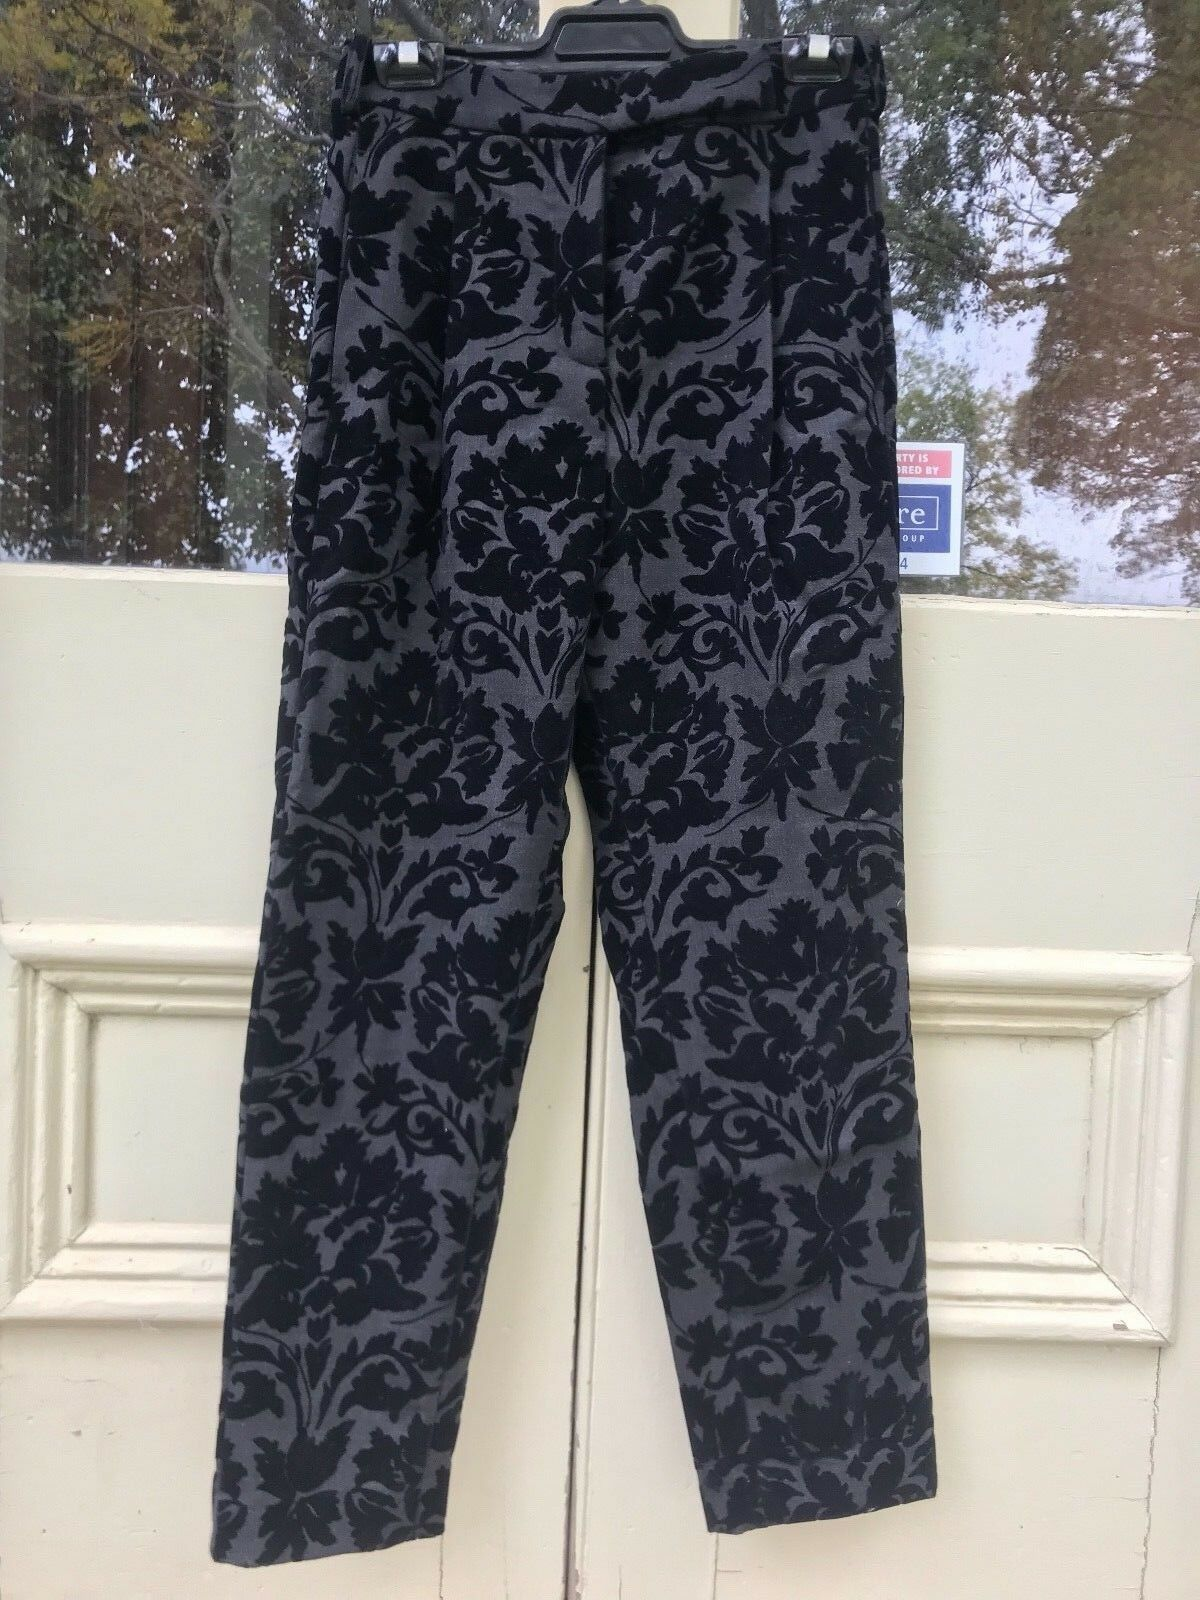 95% wool Deluxe Brand dress pants made in . Size 10